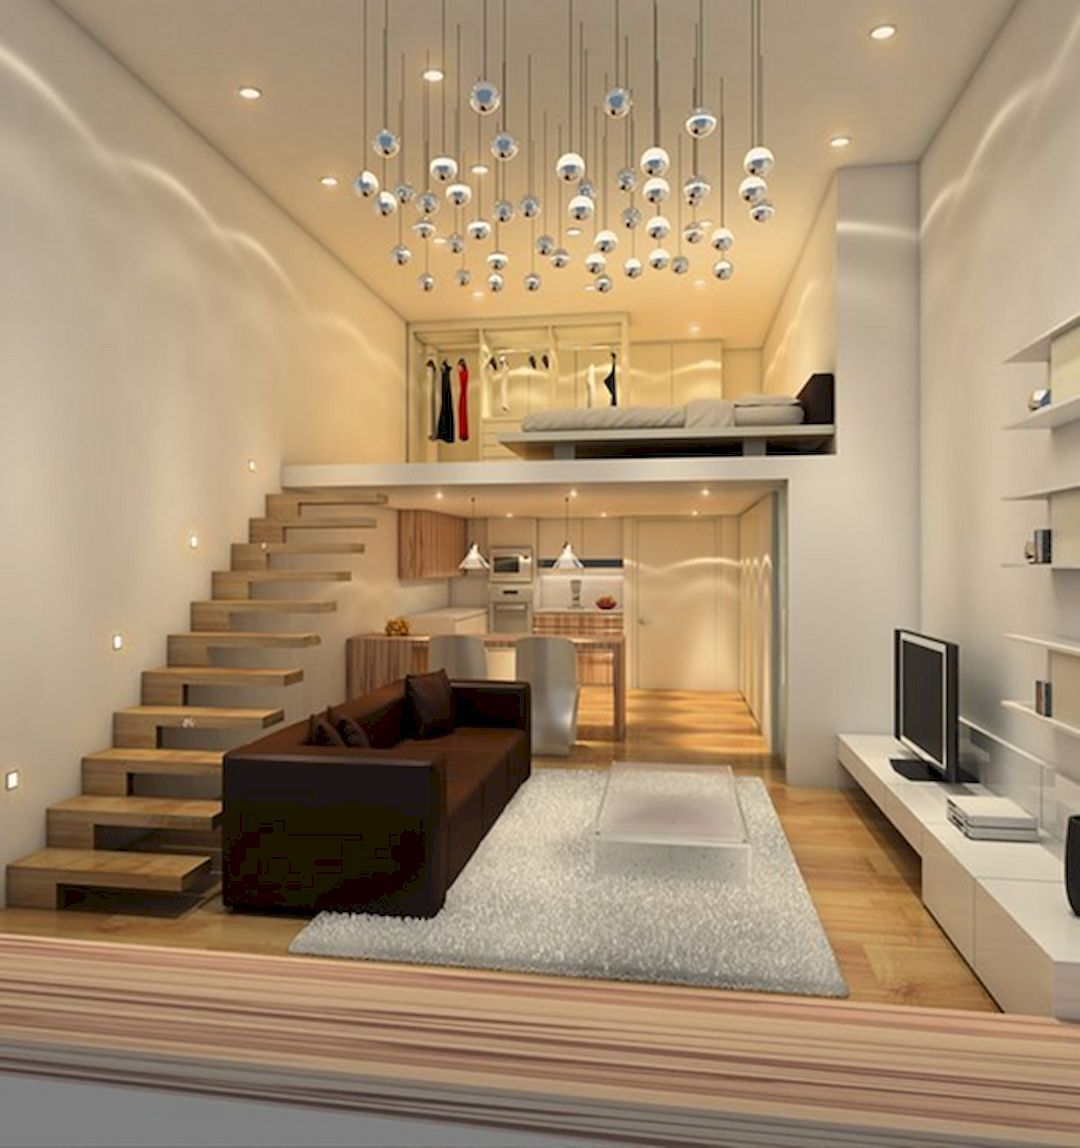 Houses Or Apartments: 80 Super Cool Modern Home Or Apartment Interior Ideas